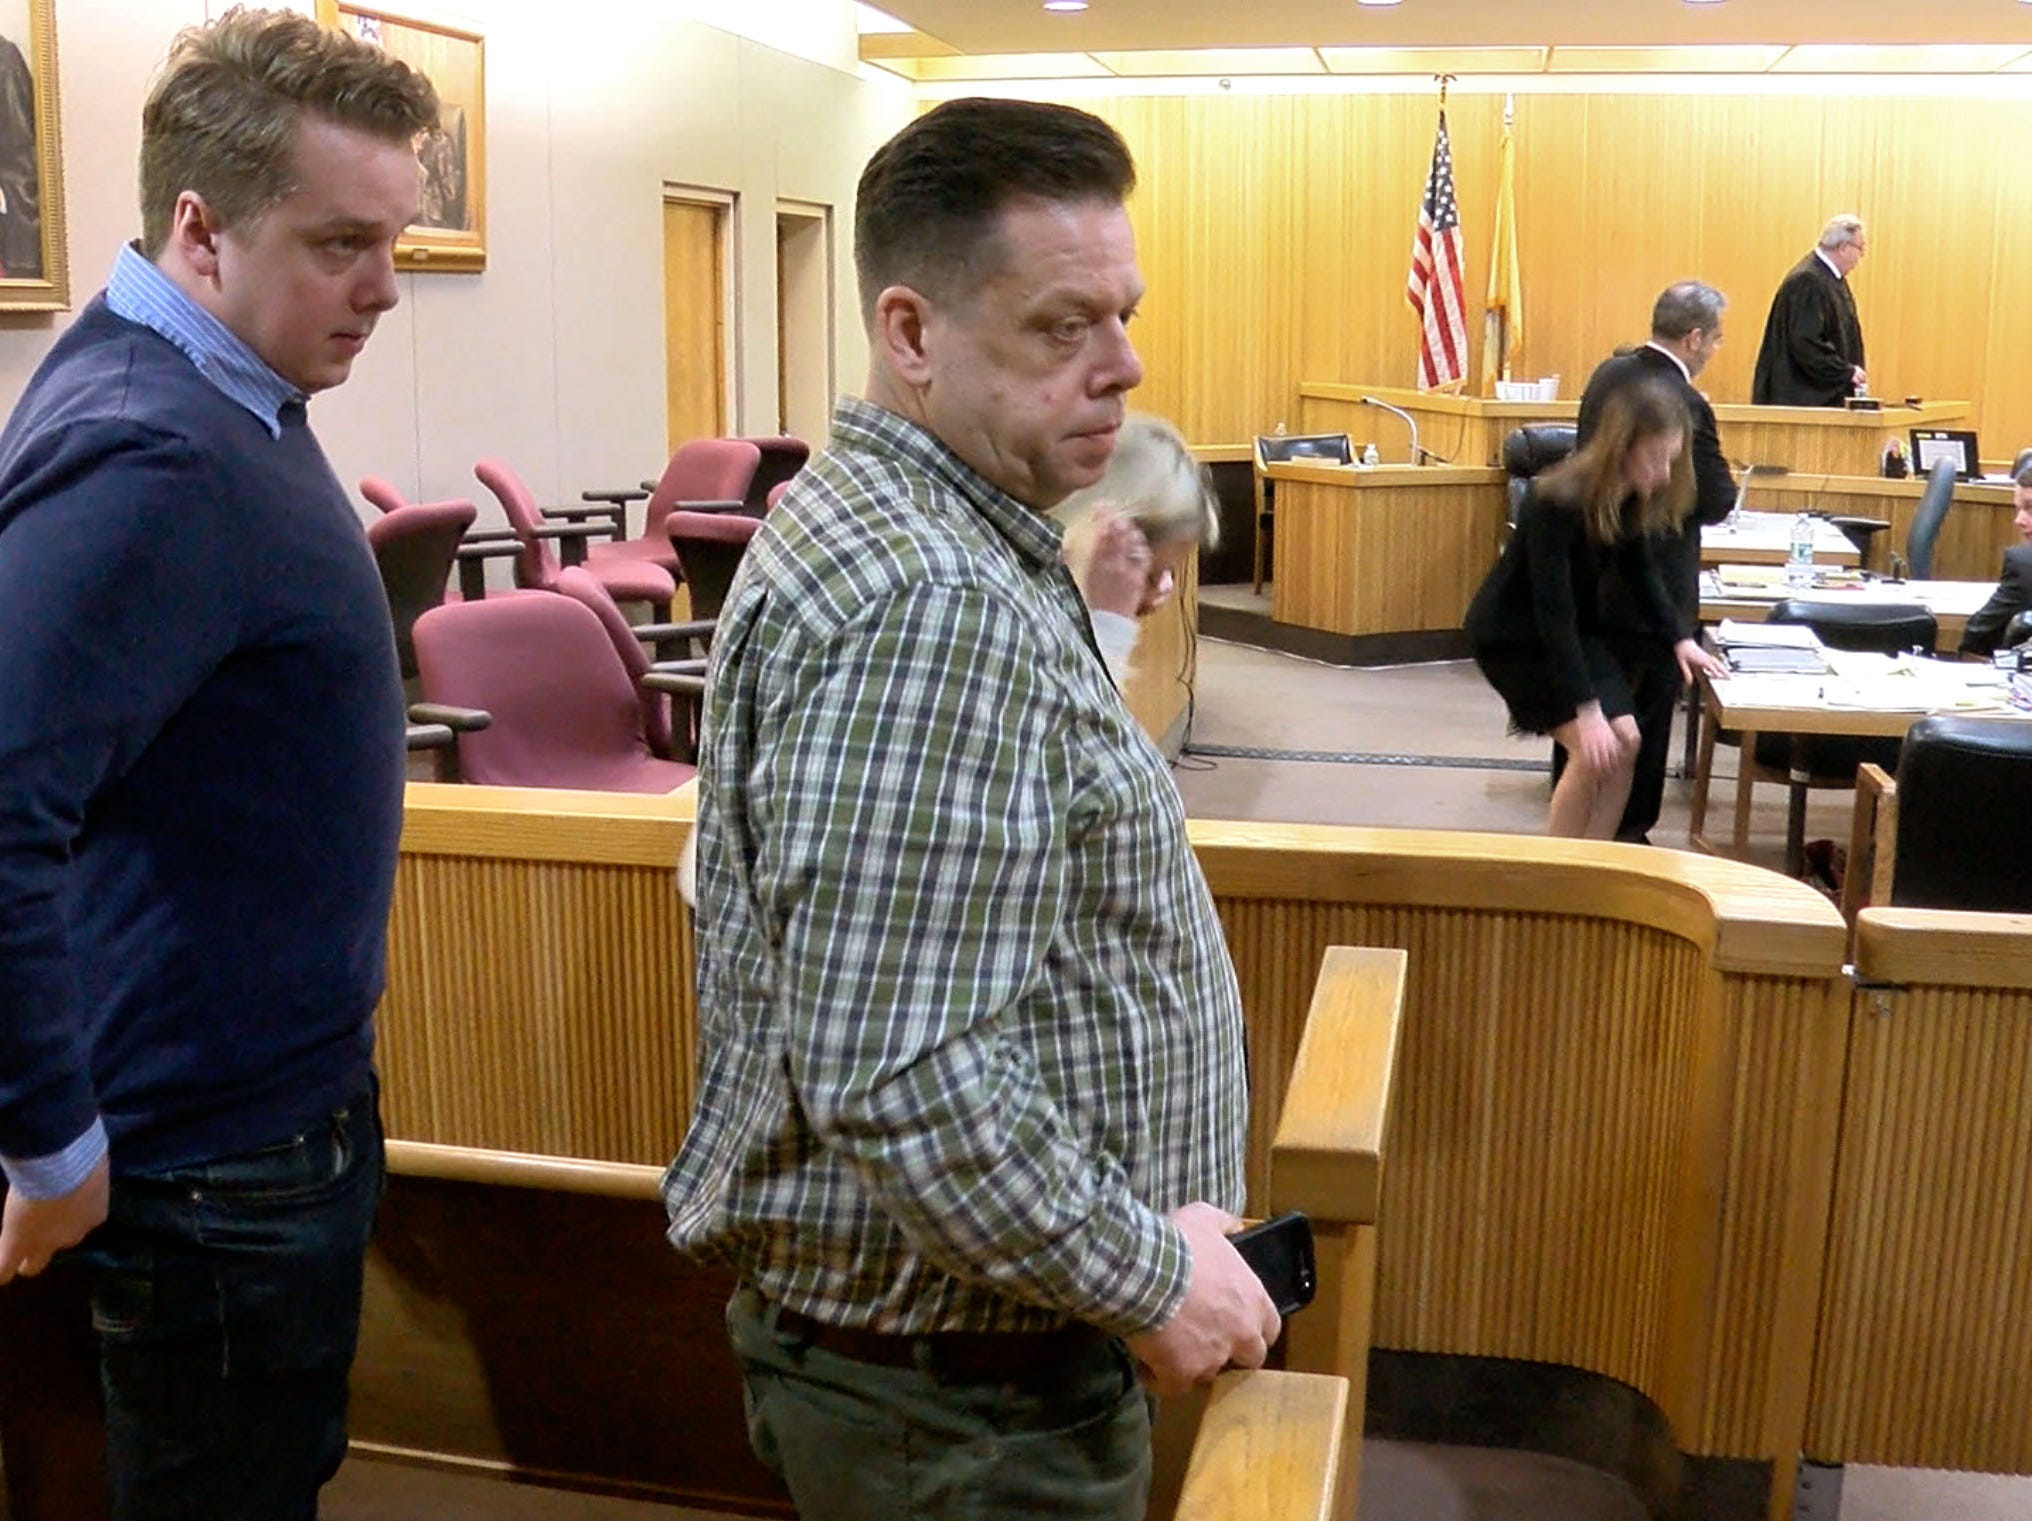 Liam McAtasney looks back to the gallery as his father Quinn McAtasney and twin brother Seamus leave Superior Court Judge Richard English's courtroom in Freehold Wednesday, January 30, 2019.  Liam McAtasney is on trial for the 2016 murder of Sarah Stern.